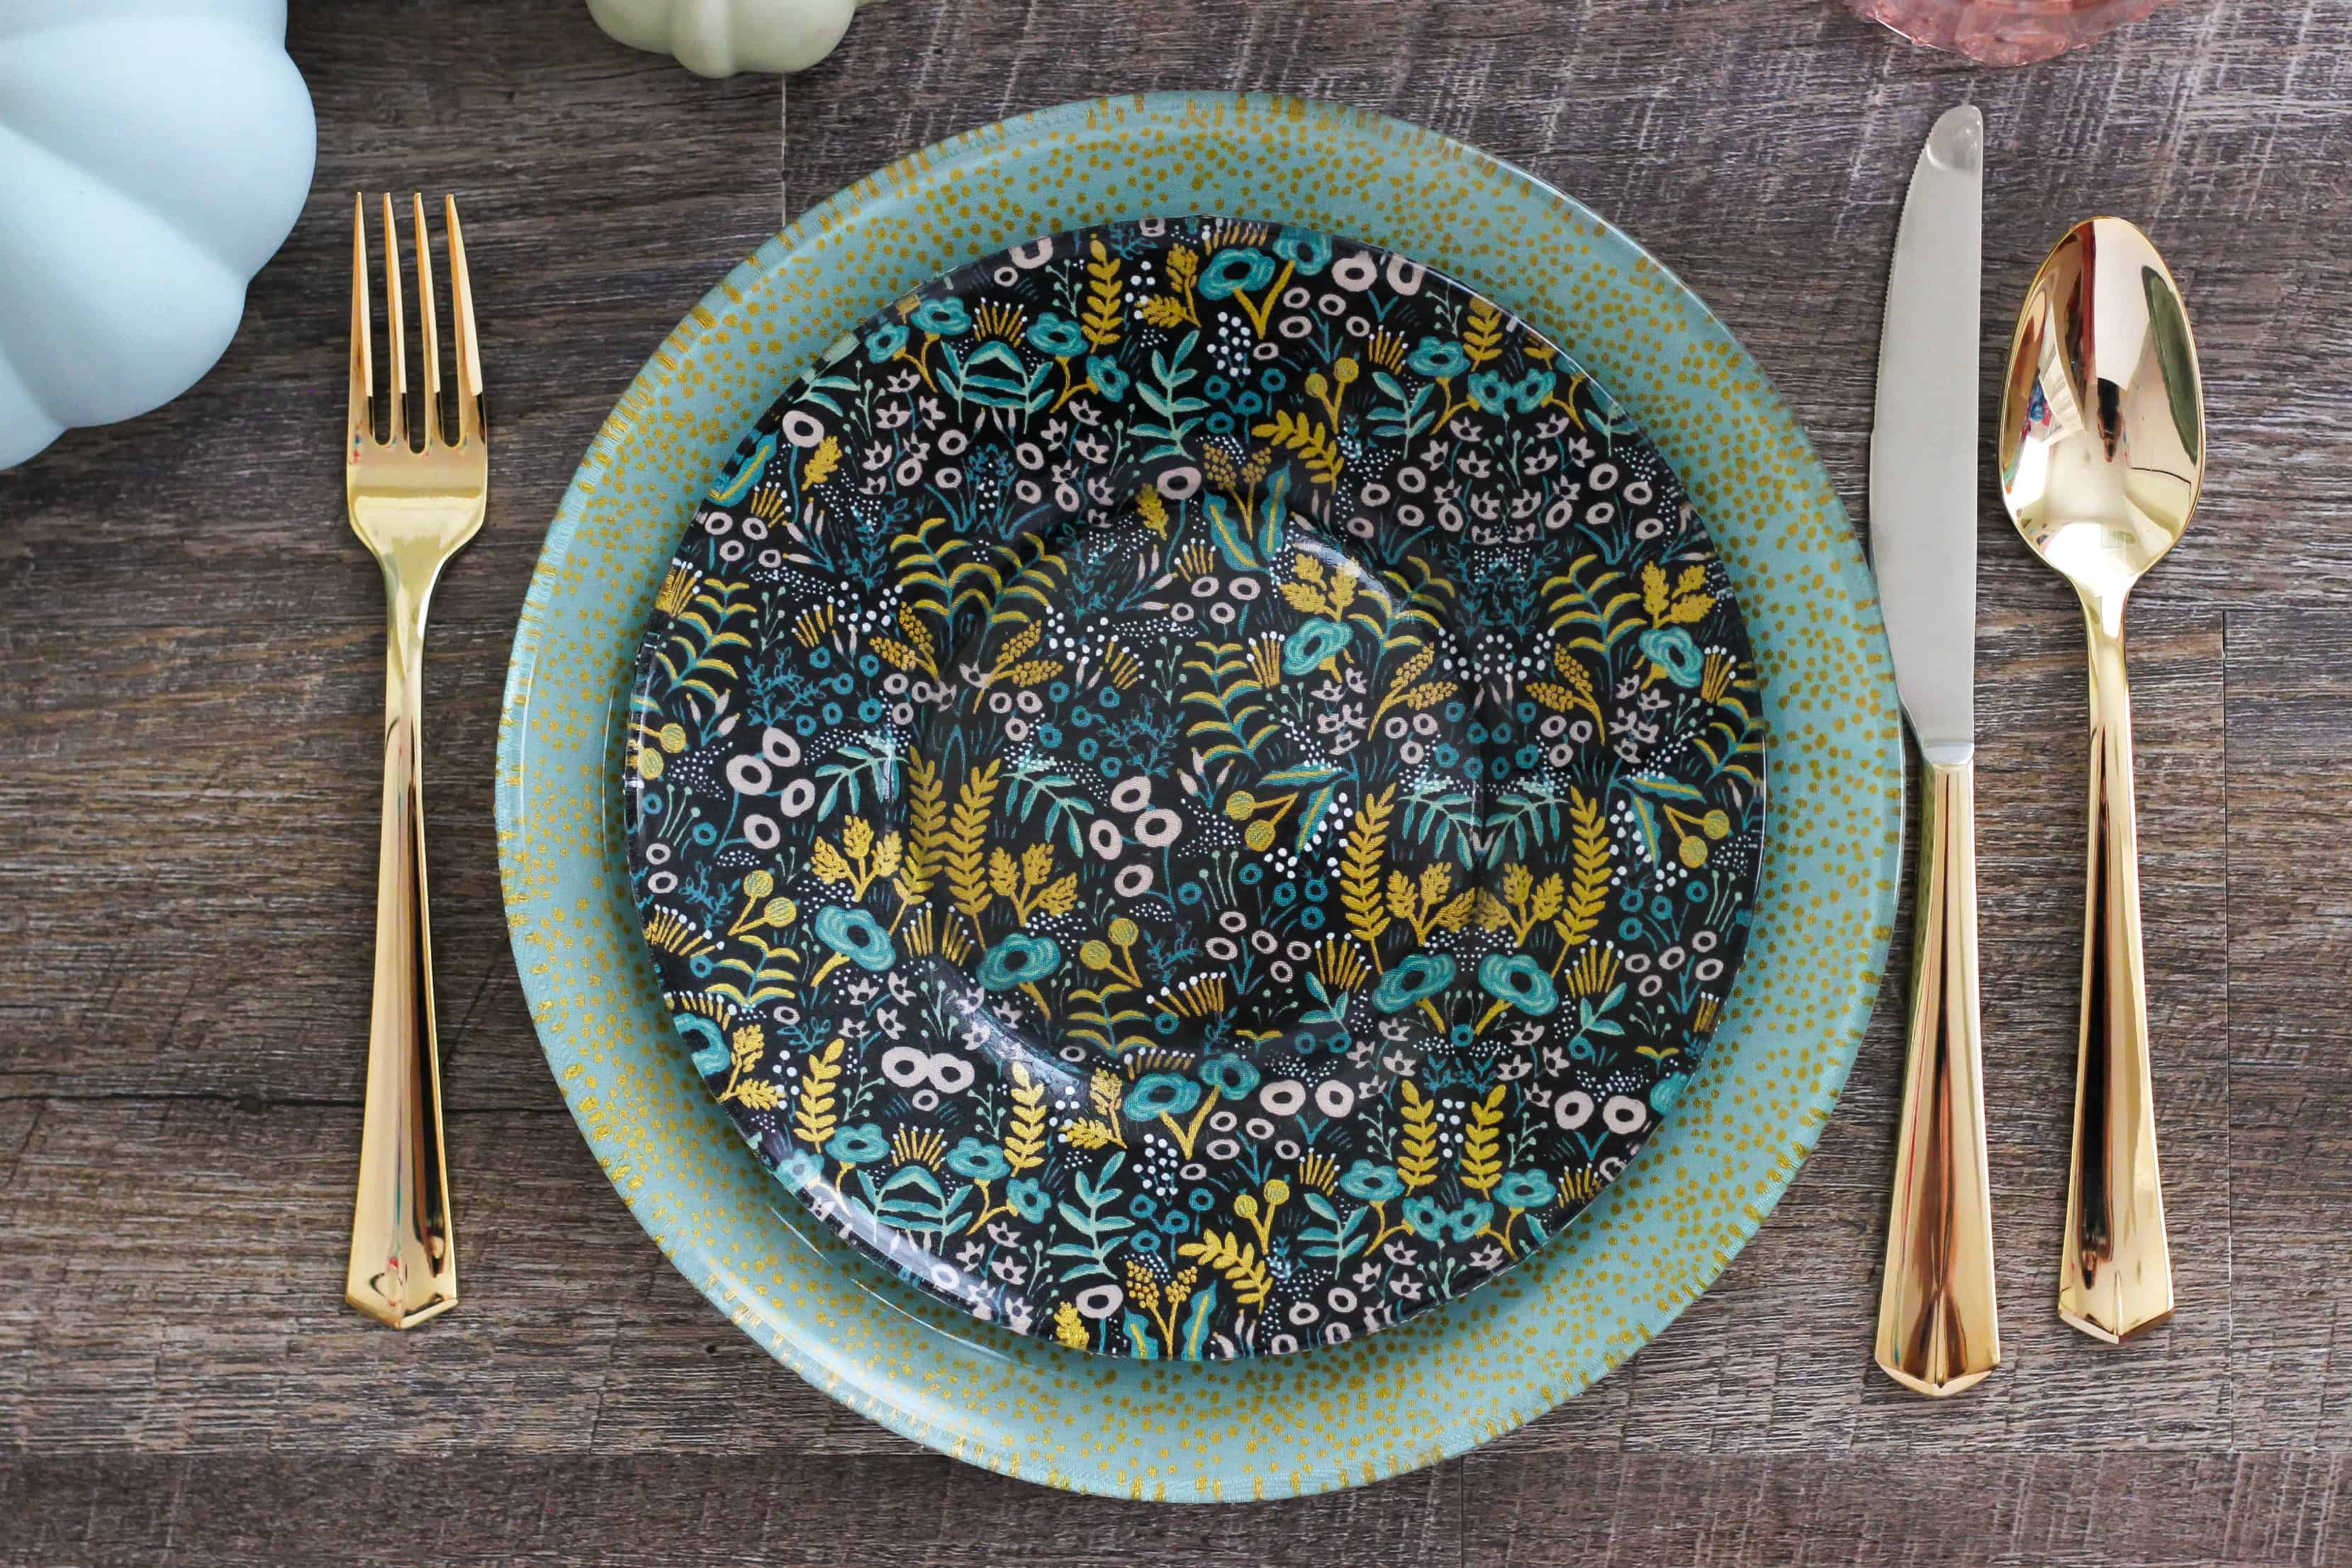 Easily create festive and stylish Decoupage Fabric Glass Plates for parties and entertaining. Great for the holidays!